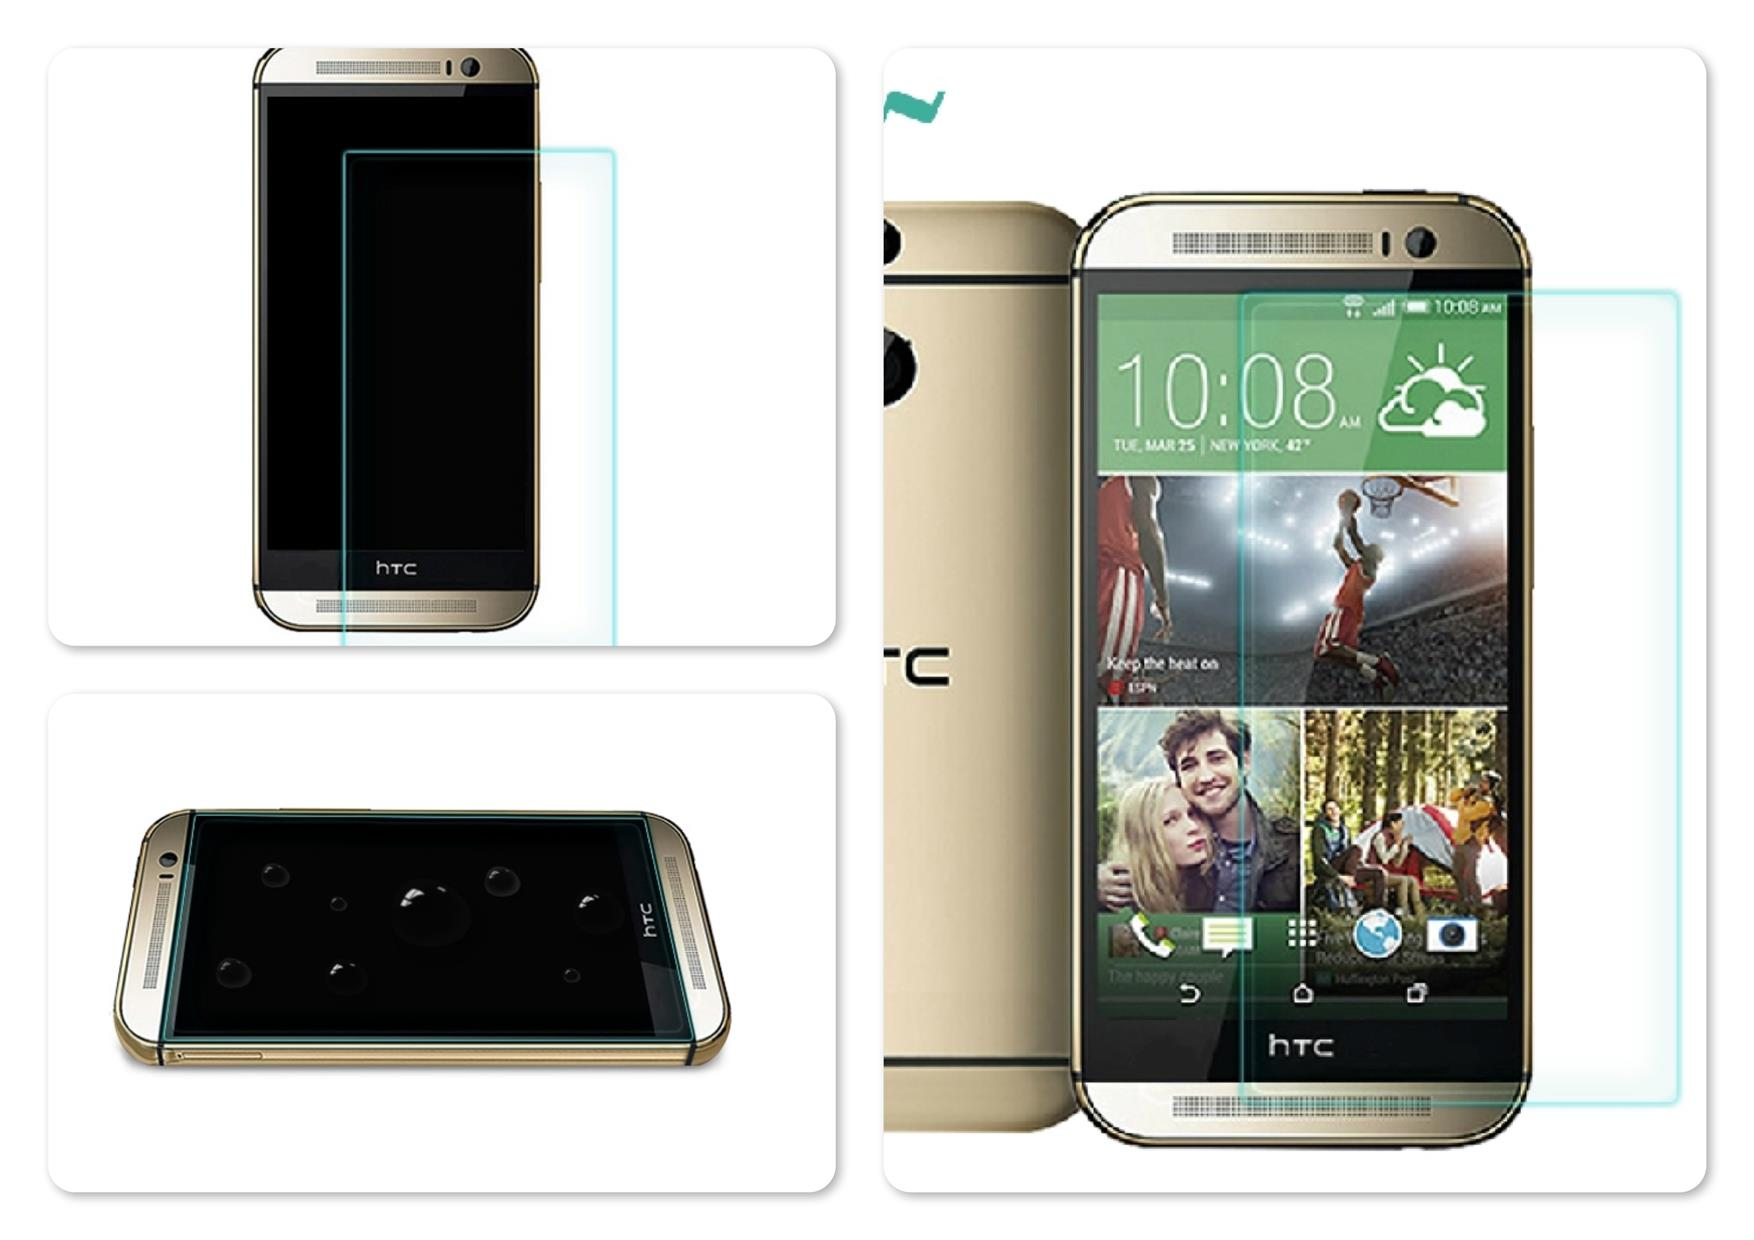 Bdotcom = HTC One M8 Nillkin Anti-Explosion H Tempered Glass Protector